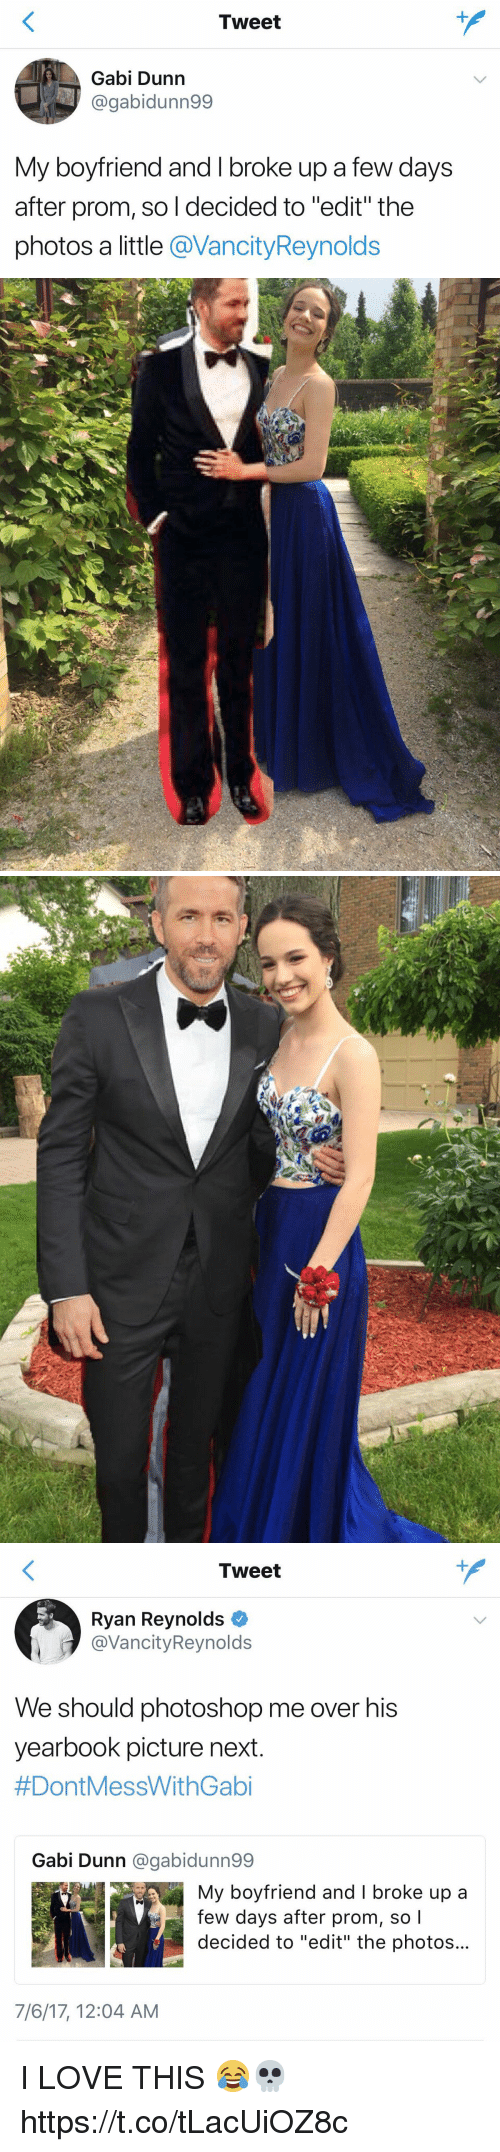 """Gaby: Tweet  Gabi Dunn  @gabidunn99  My boyfriend and I broke up a few days  after prom, so l decided to """"edit"""" the  photos a little @VancityReynolds   Tweet  Ryan Reynolds  @VancityReynolds  We should photoshop me over his  yearbook picture next  #DontMessWithGabi  Gabi Dunn @gabidunn99  My boyfriend and I broke up a  few days after prom, so l  decided to """"edit"""" the photos...  7/6/17, 12:04 AM I LOVE THIS 😂💀 https://t.co/tLacUiOZ8c"""